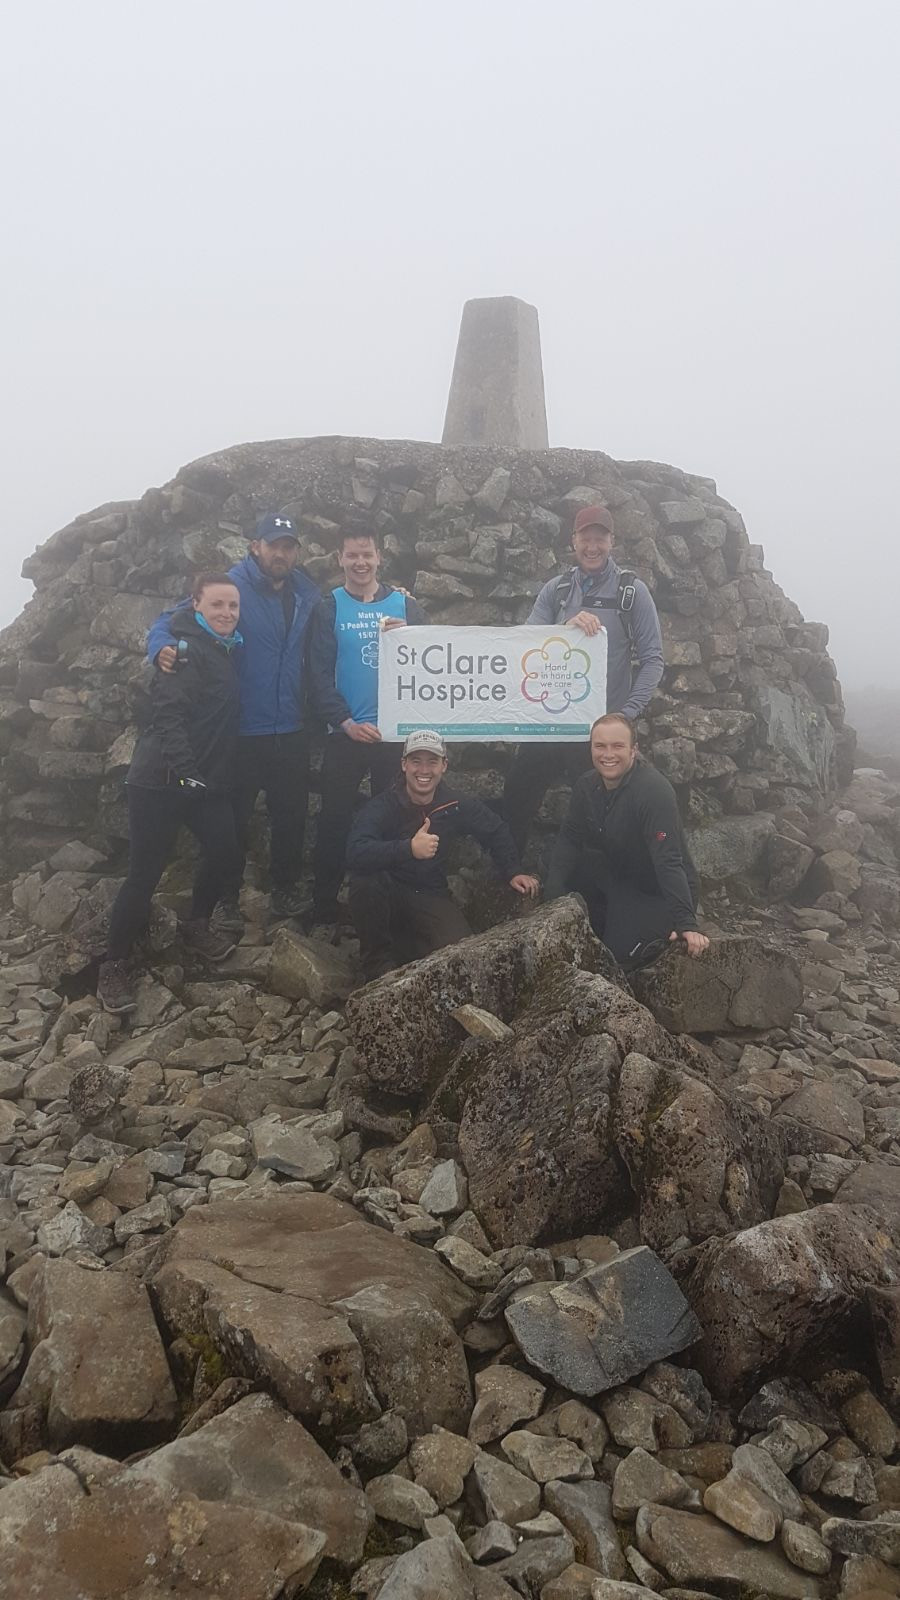 & To The Summit of Ben Nevis within the 3 hour mark!